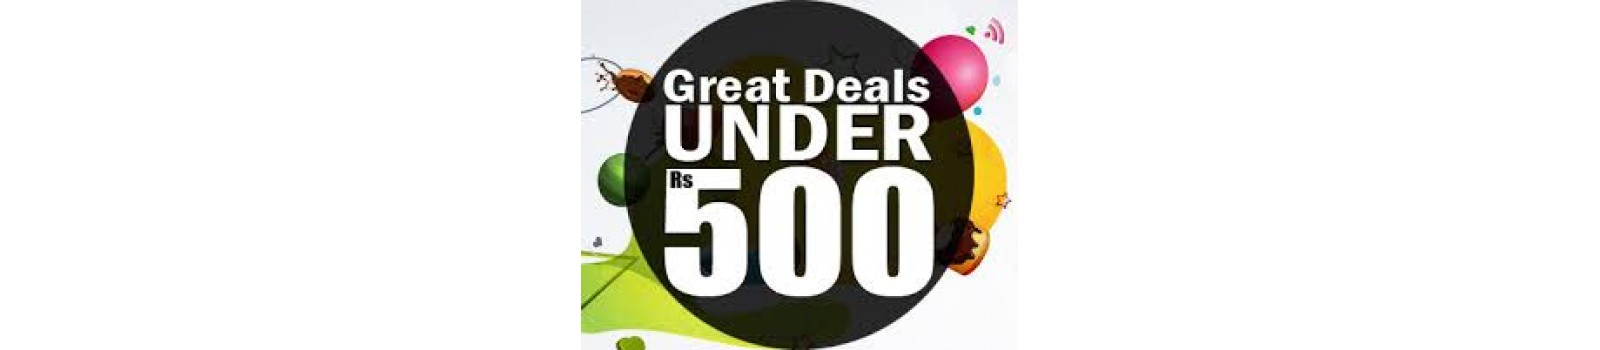 Great Deals under 599